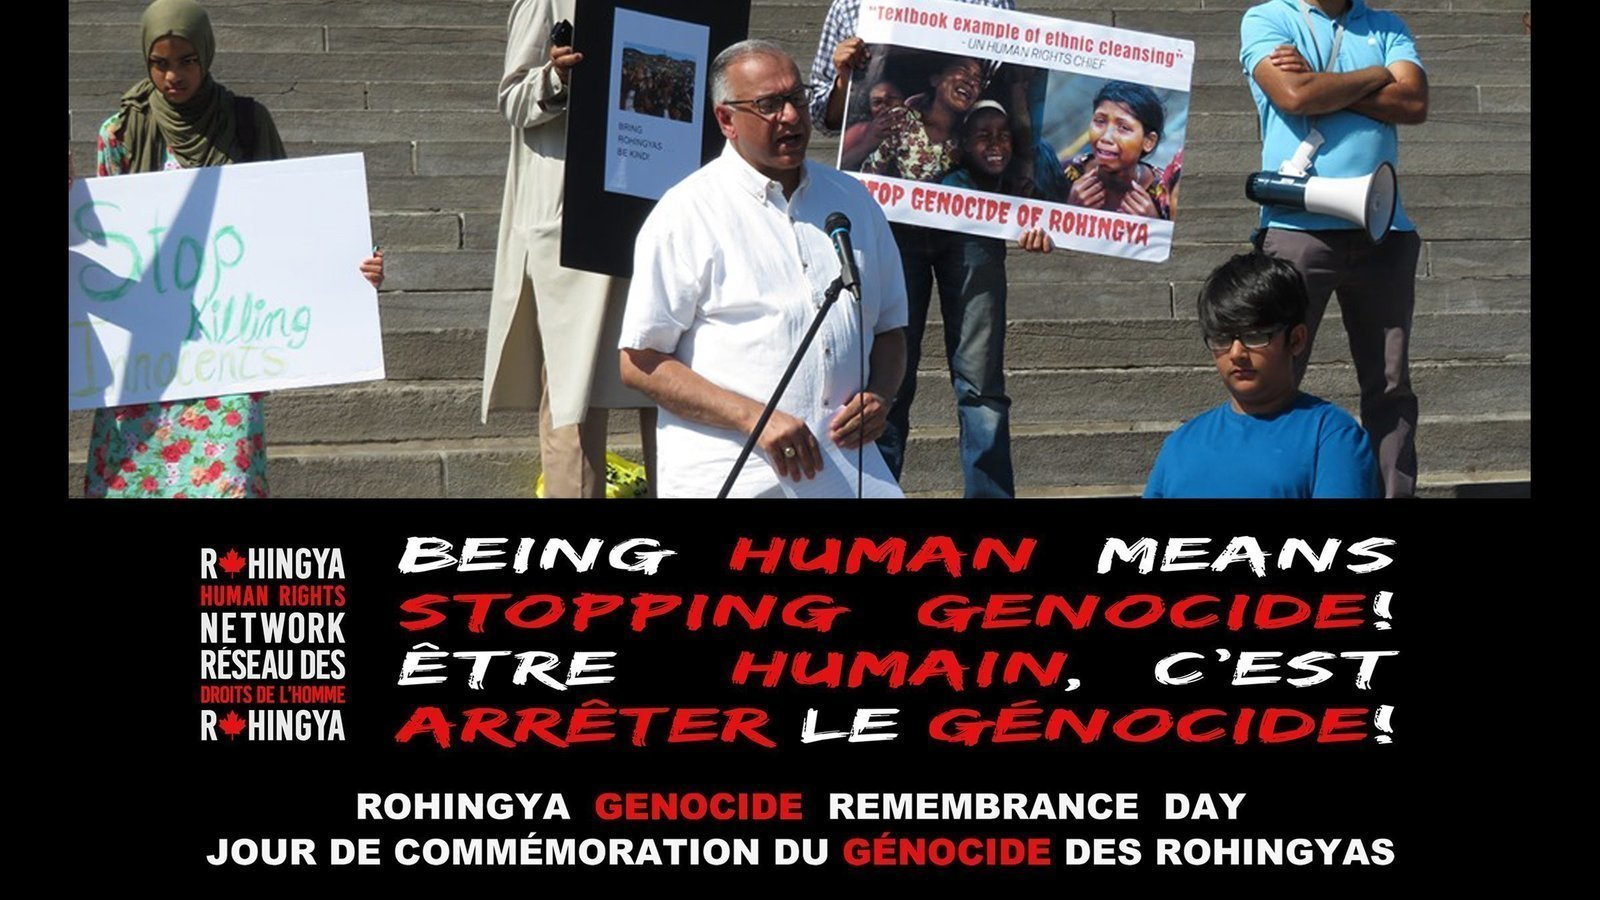 Petition update · ROHINGYA GENOCIDE REMEMBRANCE DAY